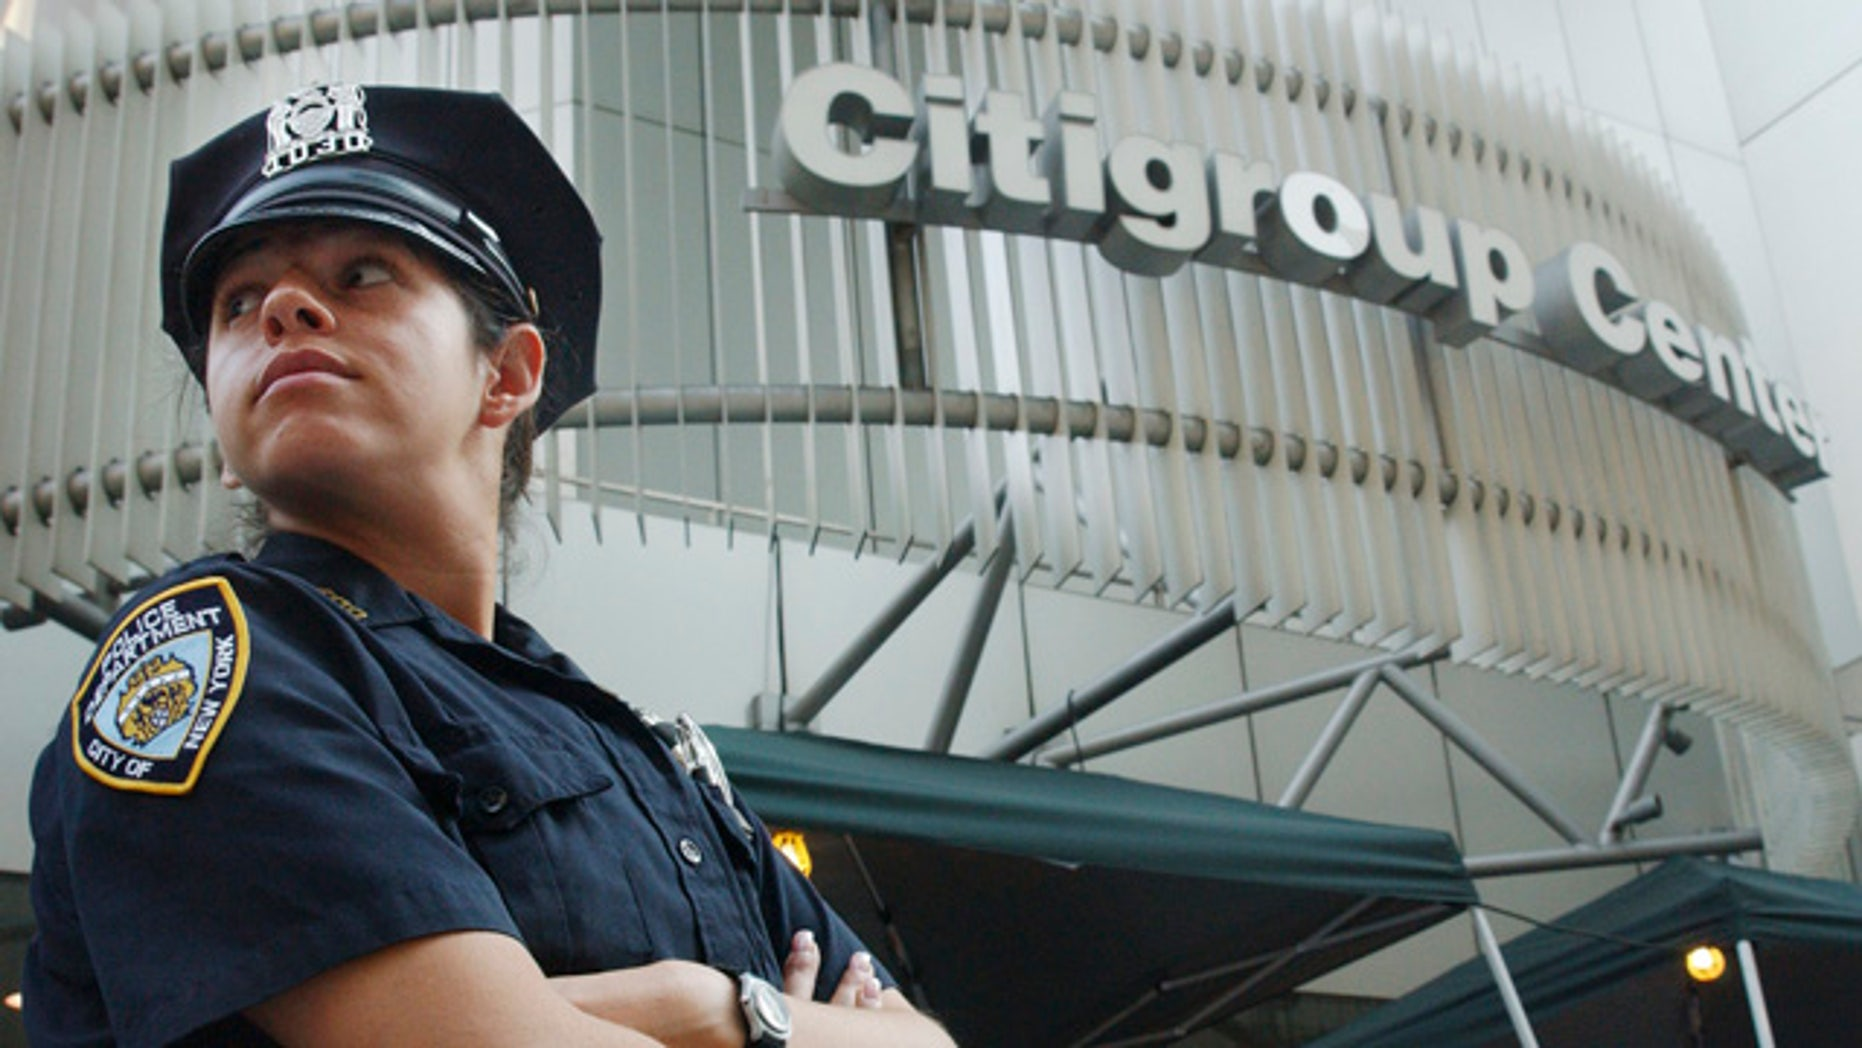 The FBI is investigating a hacker attack on Citigroup that led to the theft of tens of millions of dollars, The Wall Street Journal reported Tuesday, Dec. 22, 2009.